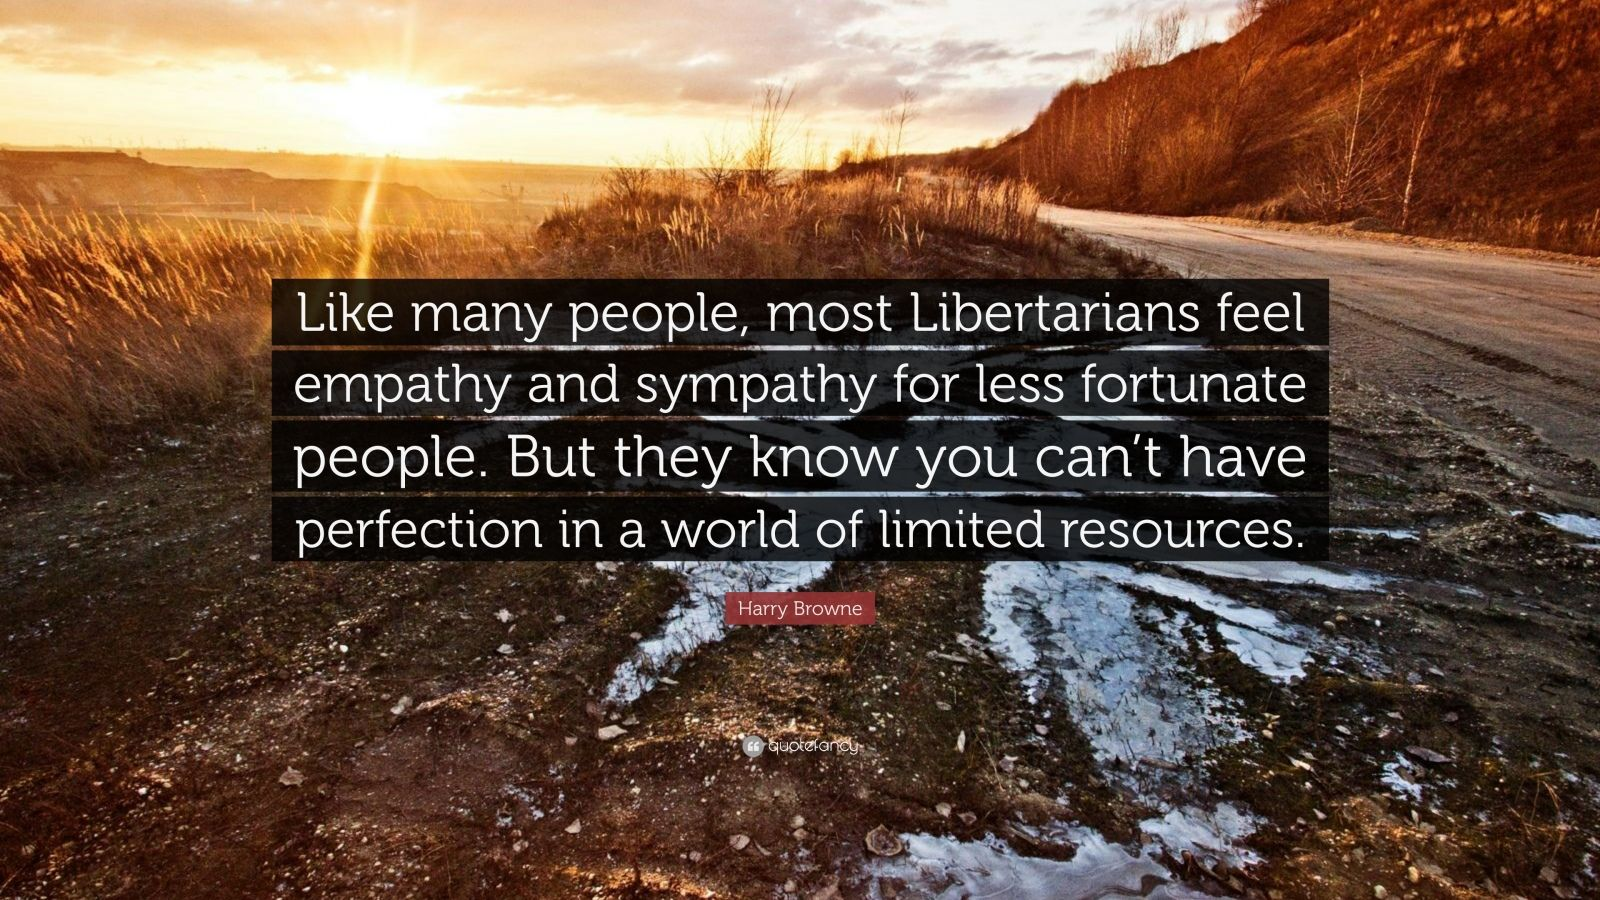 """Harry Browne Quote: """"Like many people, most Libertarians feel empathy and sympathy for less fortunate people. But they know you can't have perfection in a world of limited resources."""""""